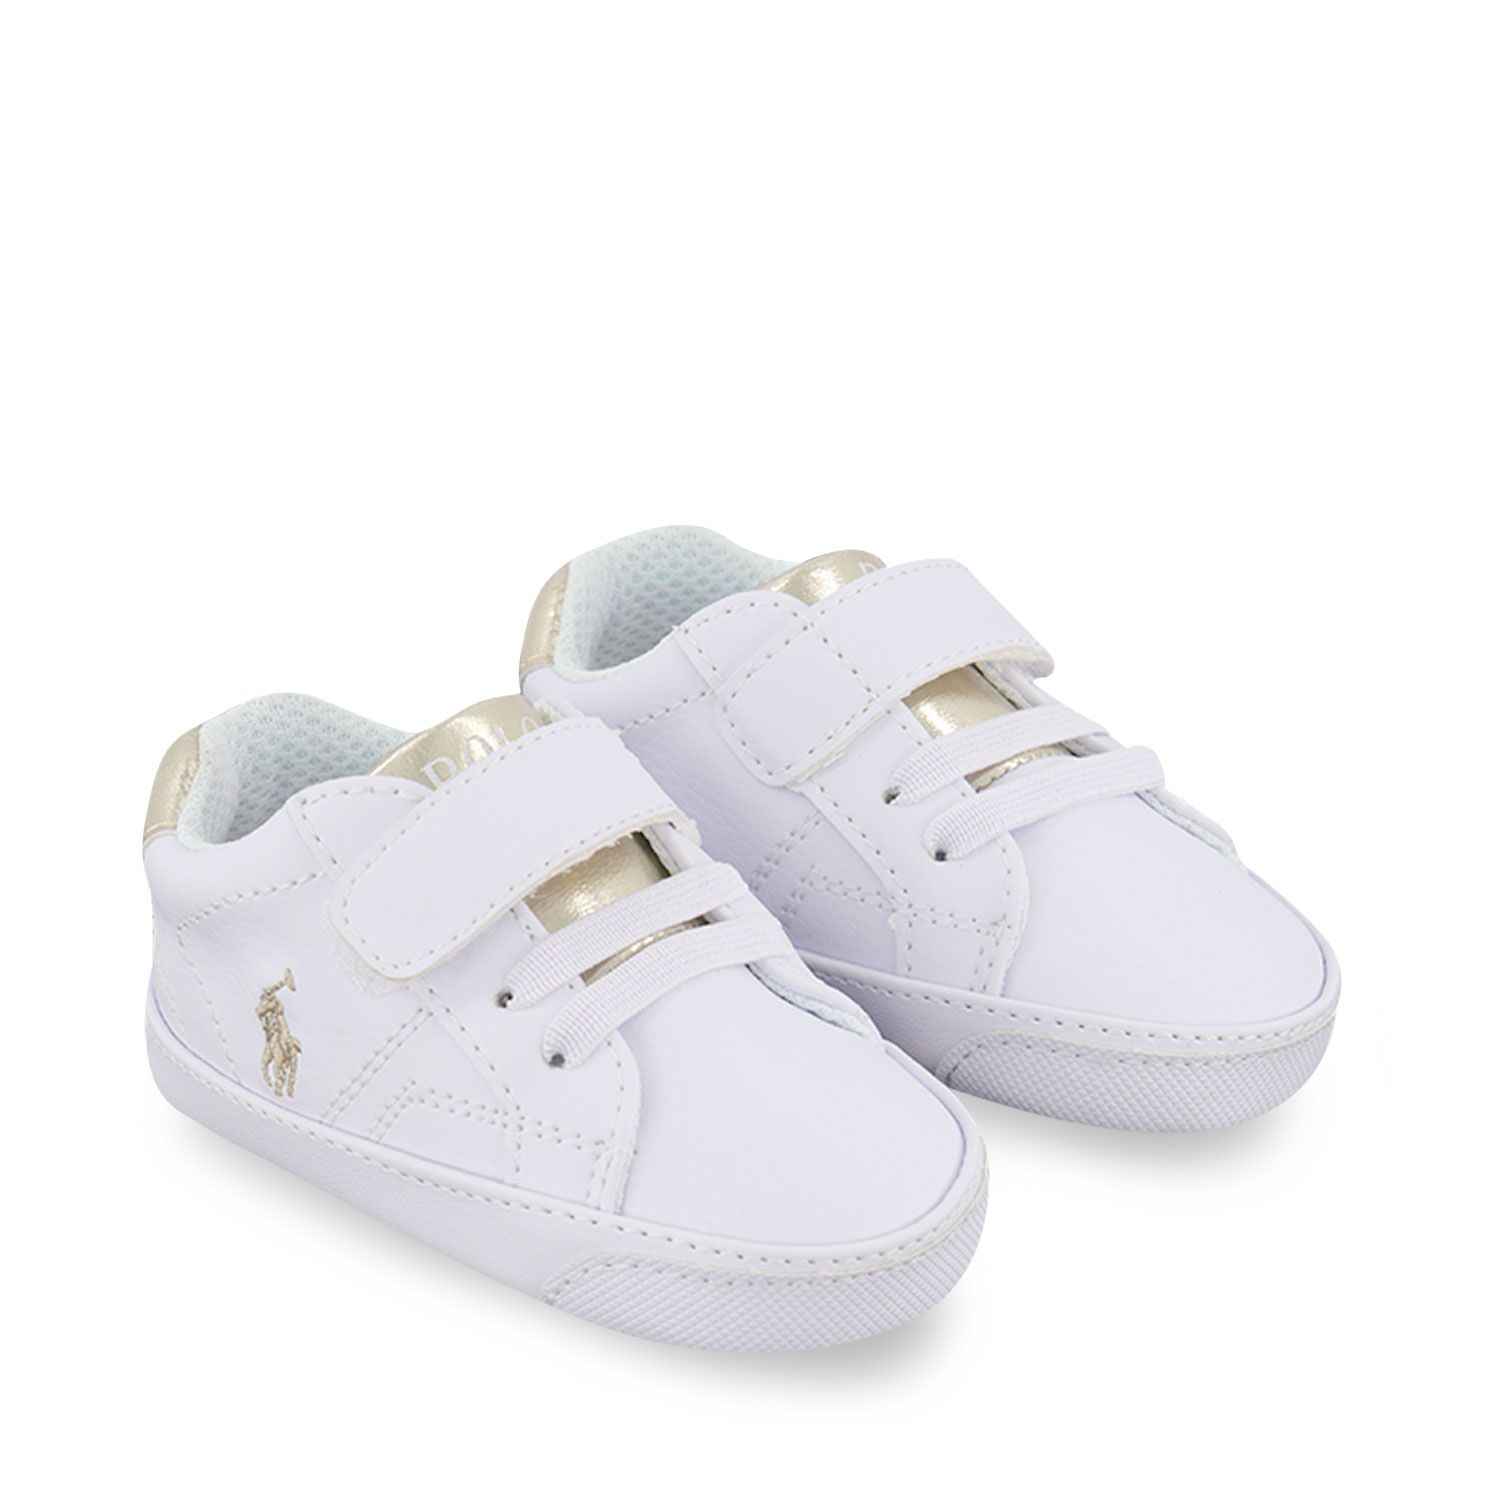 Picture of Ralph Lauren RL100566 baby sneakers white